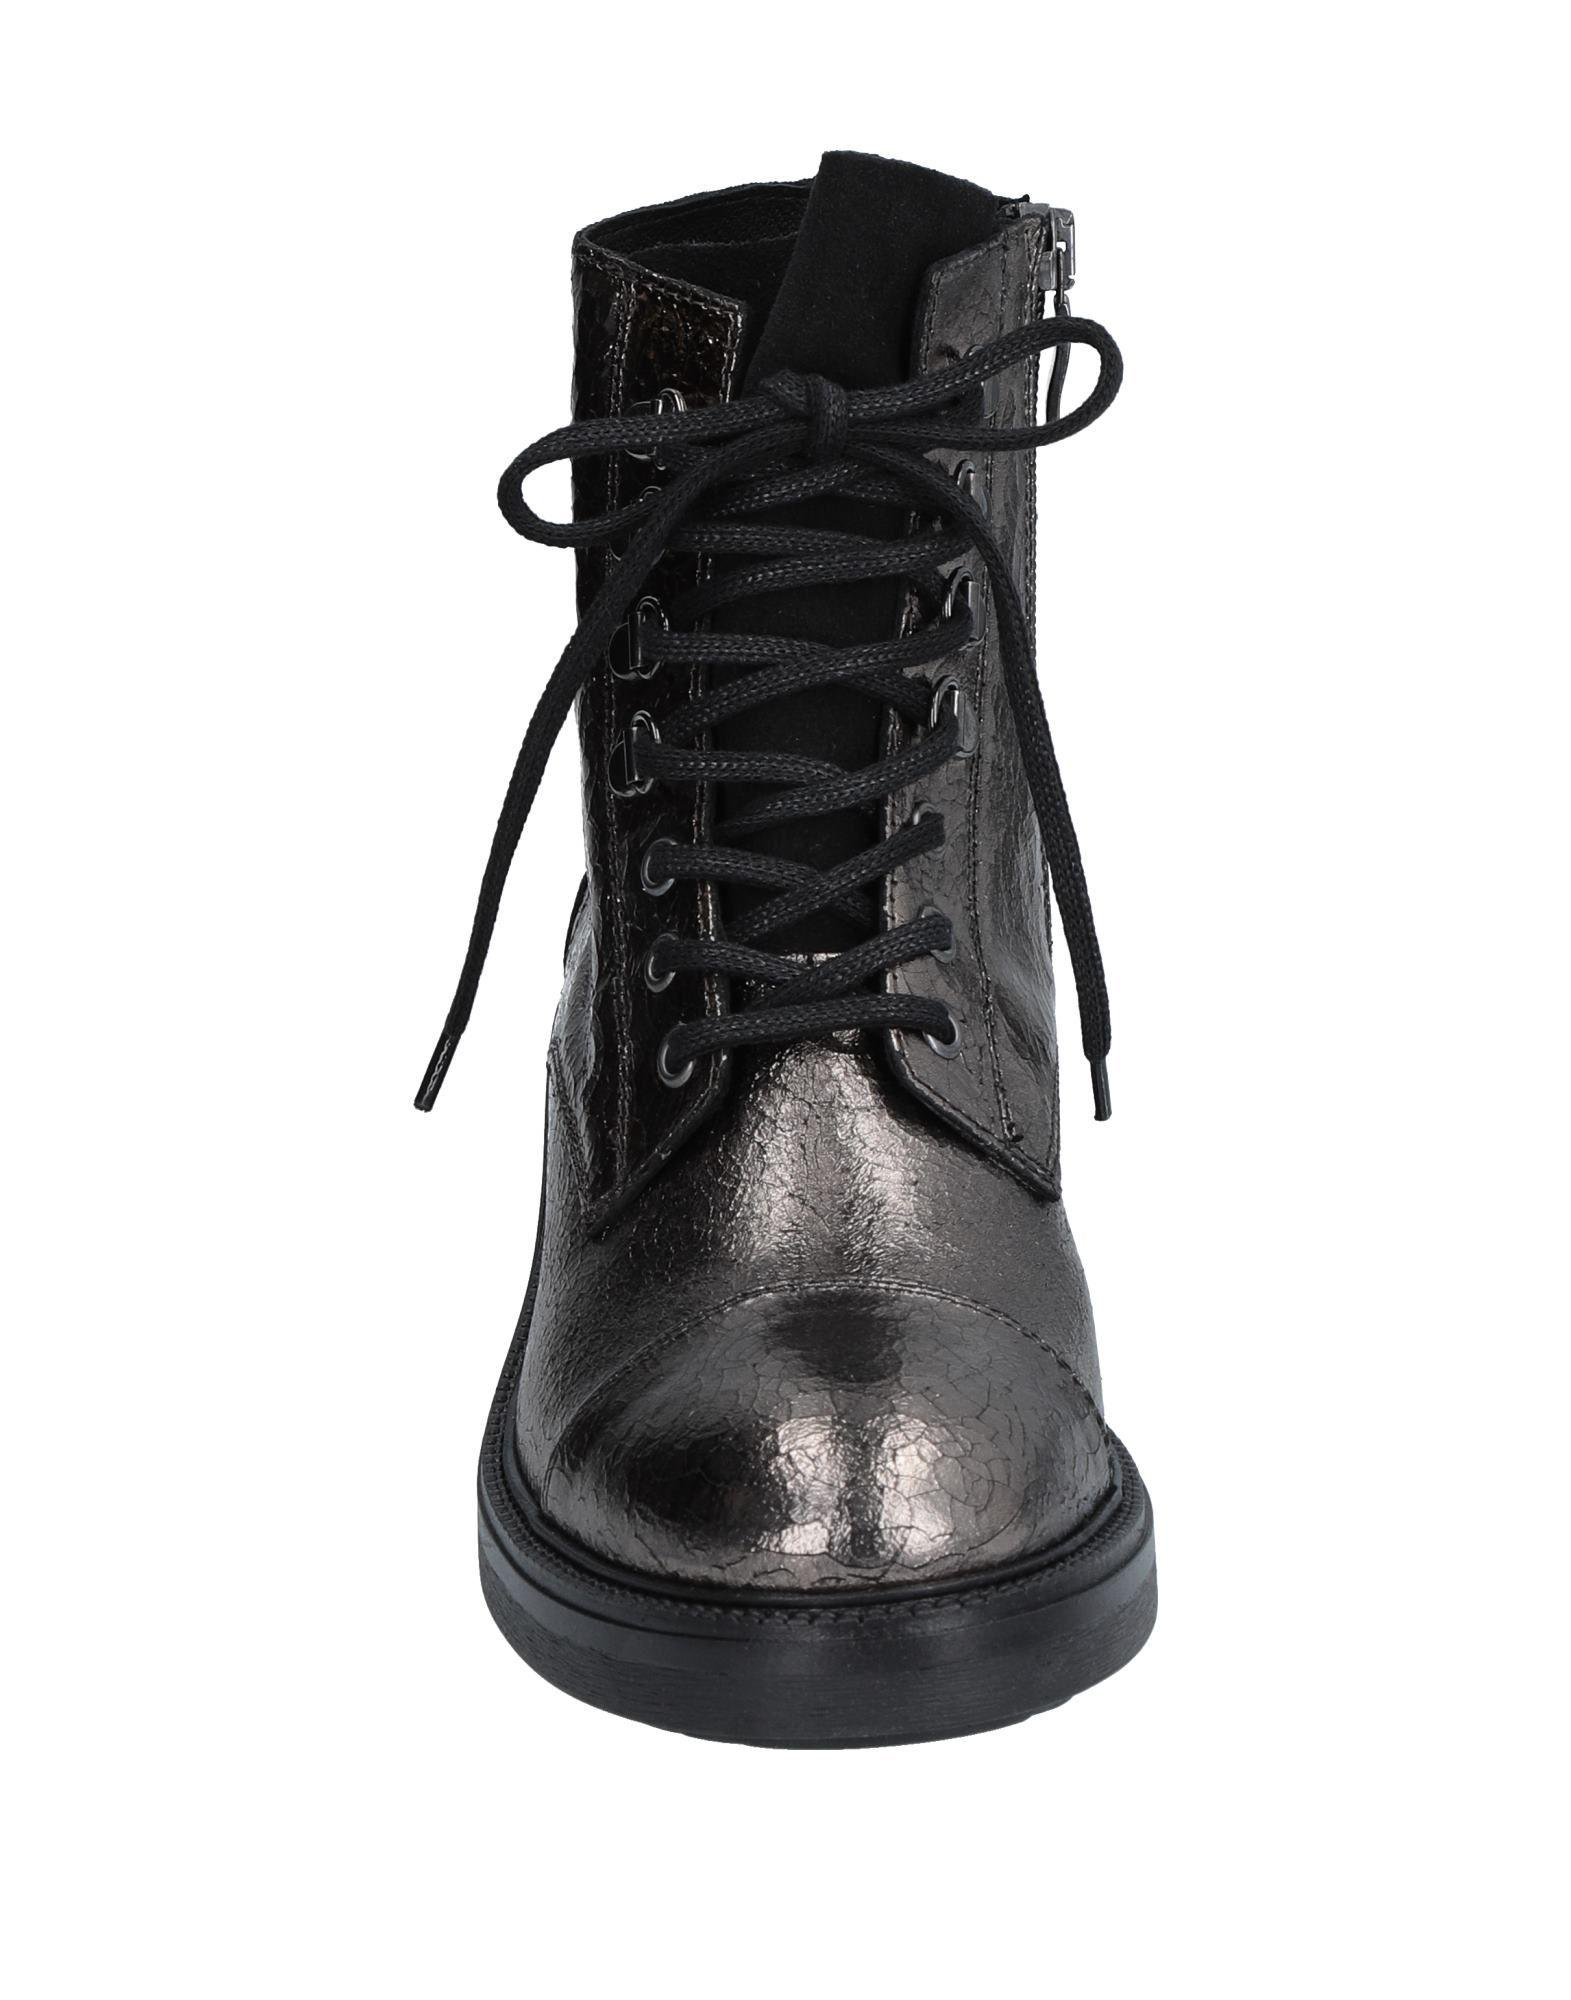 Mally Leather Ankle Boots in Bronze (Black)